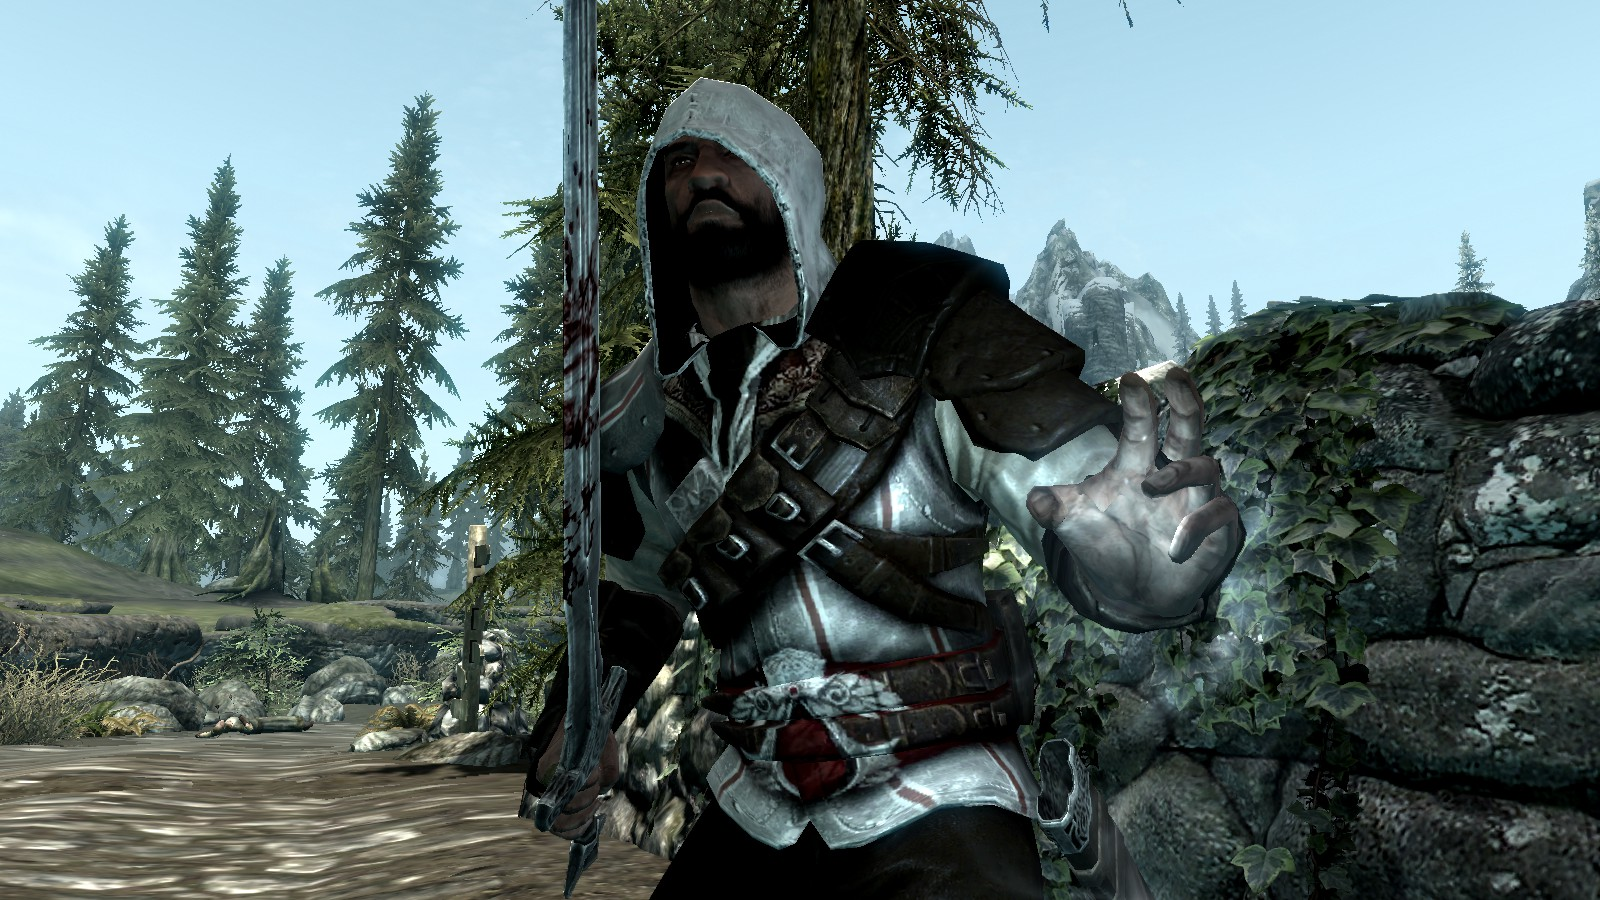 Assassin's Creed armor Skyrim mod